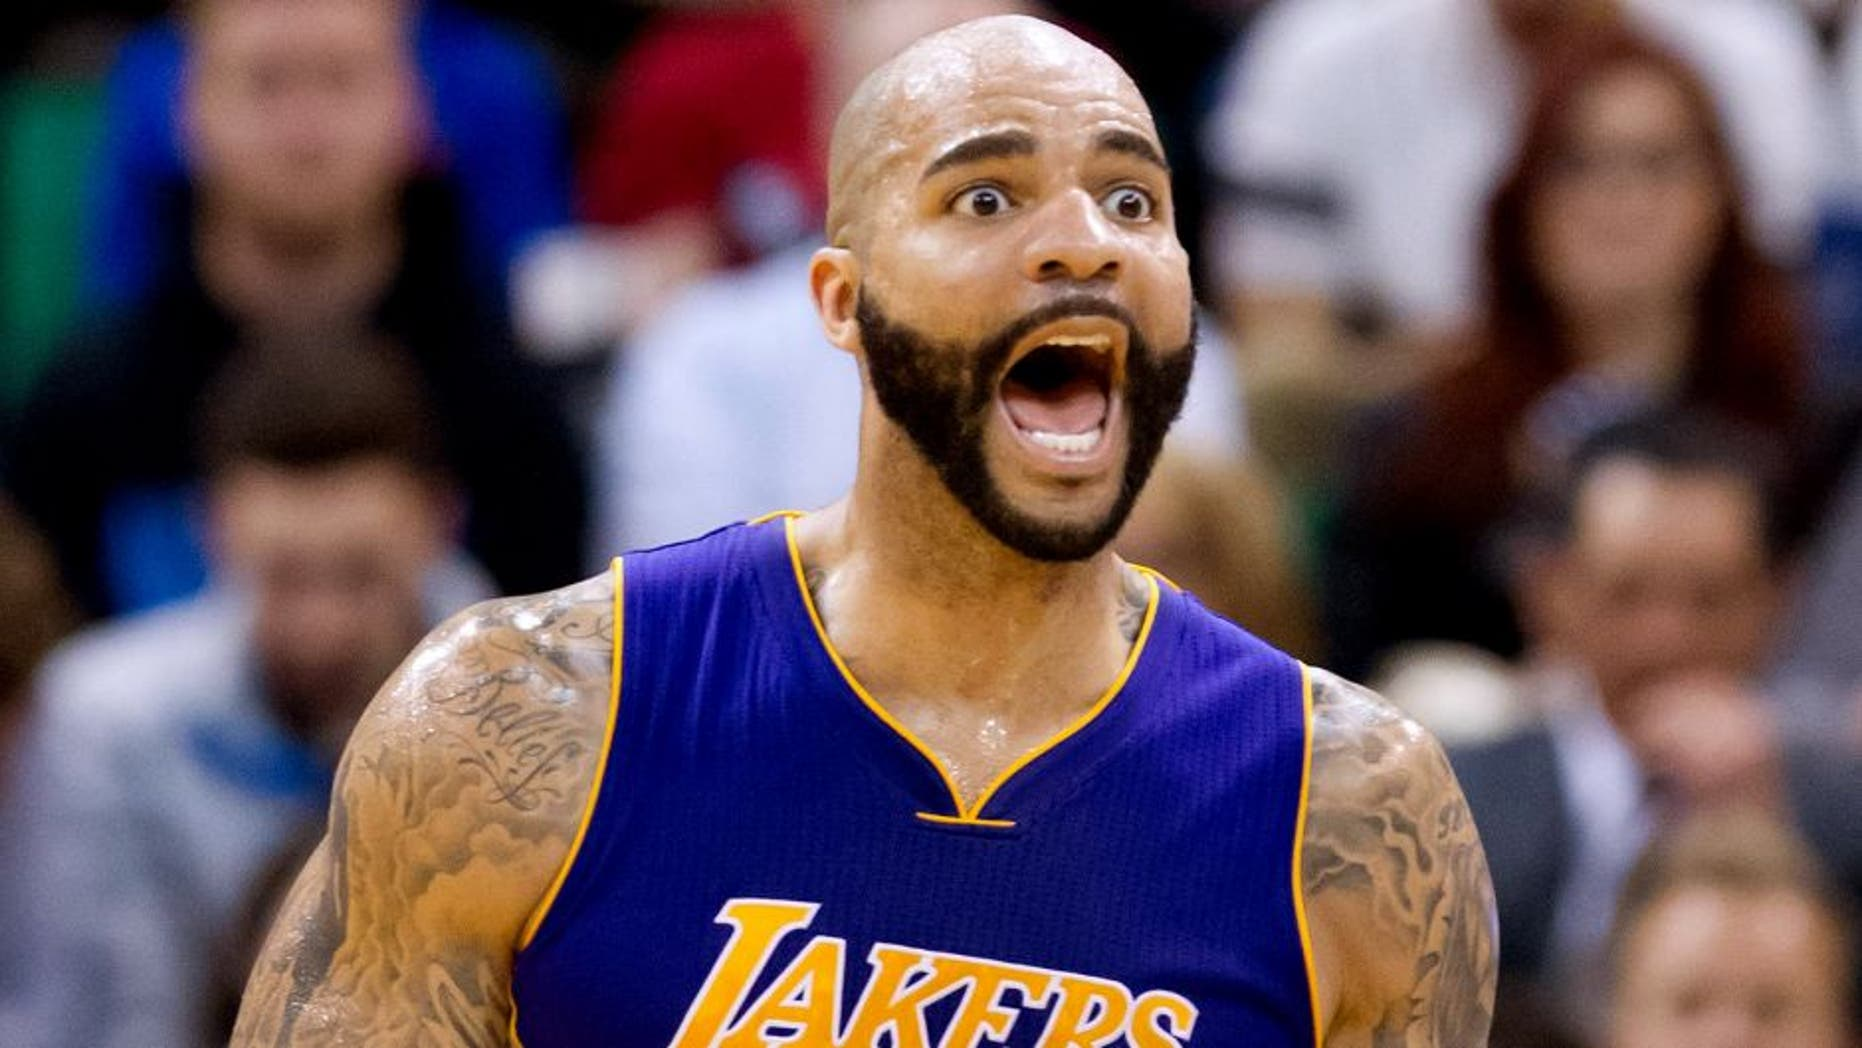 Feb 25, 2015; Salt Lake City, UT, USA; Los Angeles Lakers forward Carlos Boozer (5) reacts during the second half against the Utah Jazz at EnergySolutions Arena. The Lakers won 100-97. Mandatory Credit: Russ Isabella-USA TODAY Sports